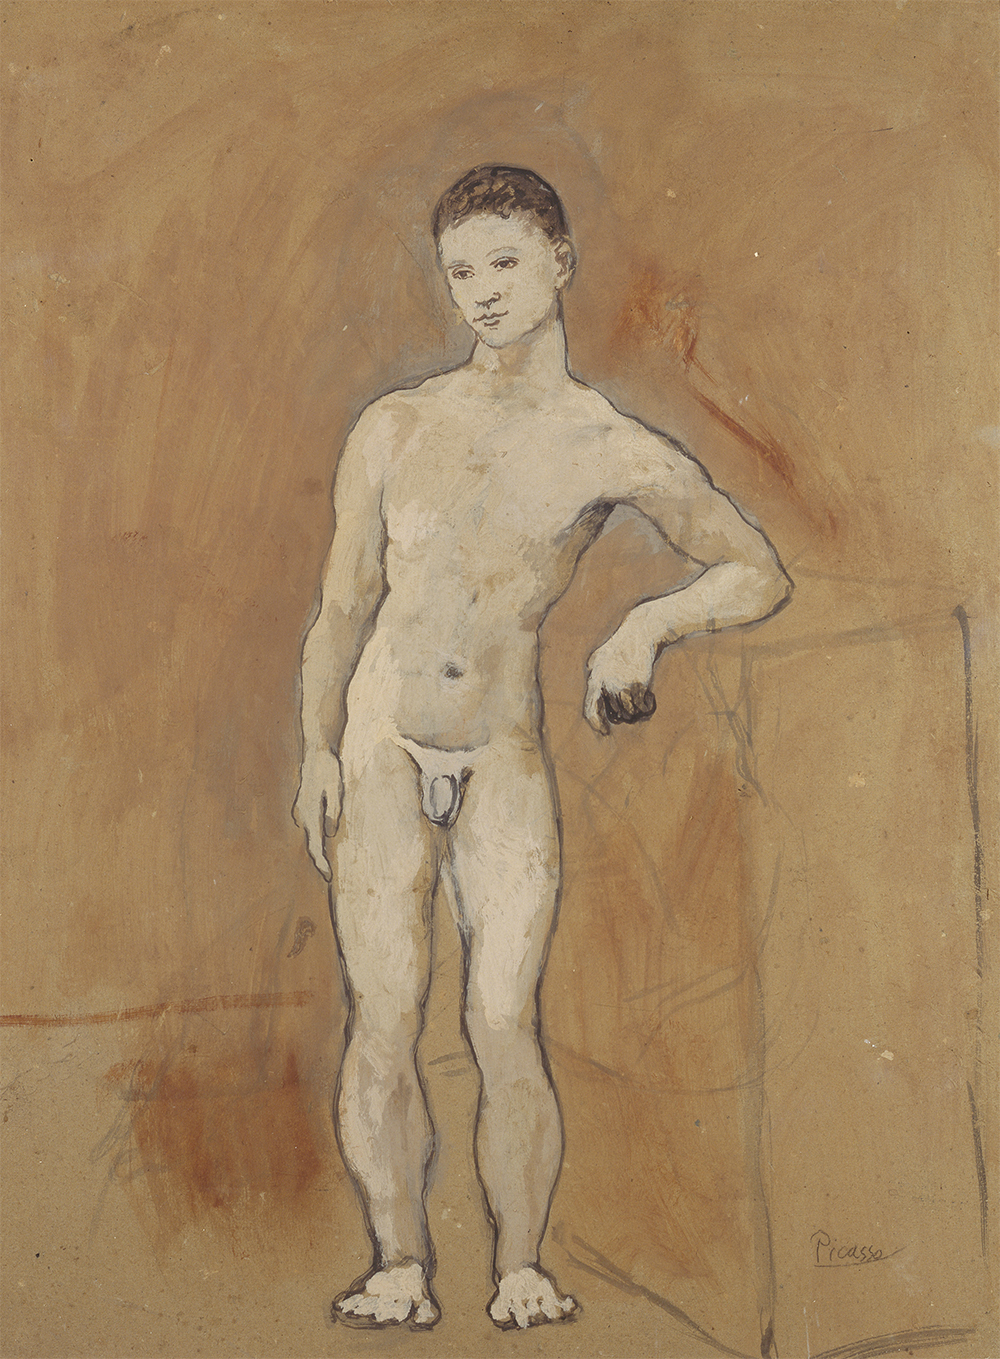 Pablo Picasso, Nude boy, 1906, gouache on card, 67.5 x 52 cm, The State Hermitage Museum, St Petersburg, Inv OR 40777 © Pablo Picasso/Succession Pablo Picasso/Copyright Agency 2018 (photo: © The State Hermitage Museum 2018, Vladimir Terebenin, Leonard Kheifets and Yuri Mololkovets)